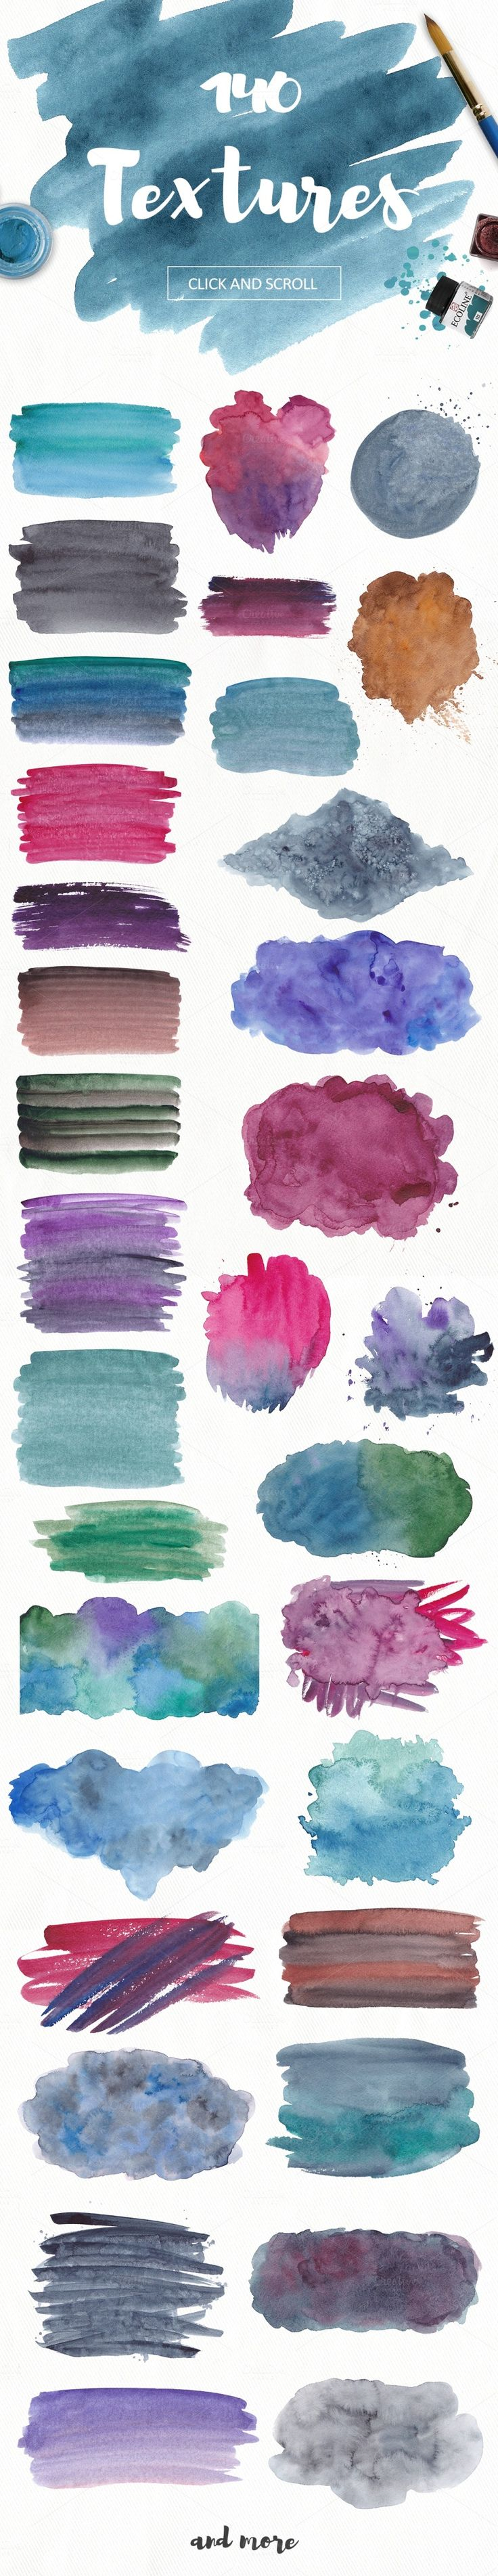 These watercolor textures are perfect for scrapbooking, cardmaking, home decor items, invitations, photo albums, craft projects, collages, wall art, web graphics, business cards, letterhead, wedding supplies, stationary and much more.